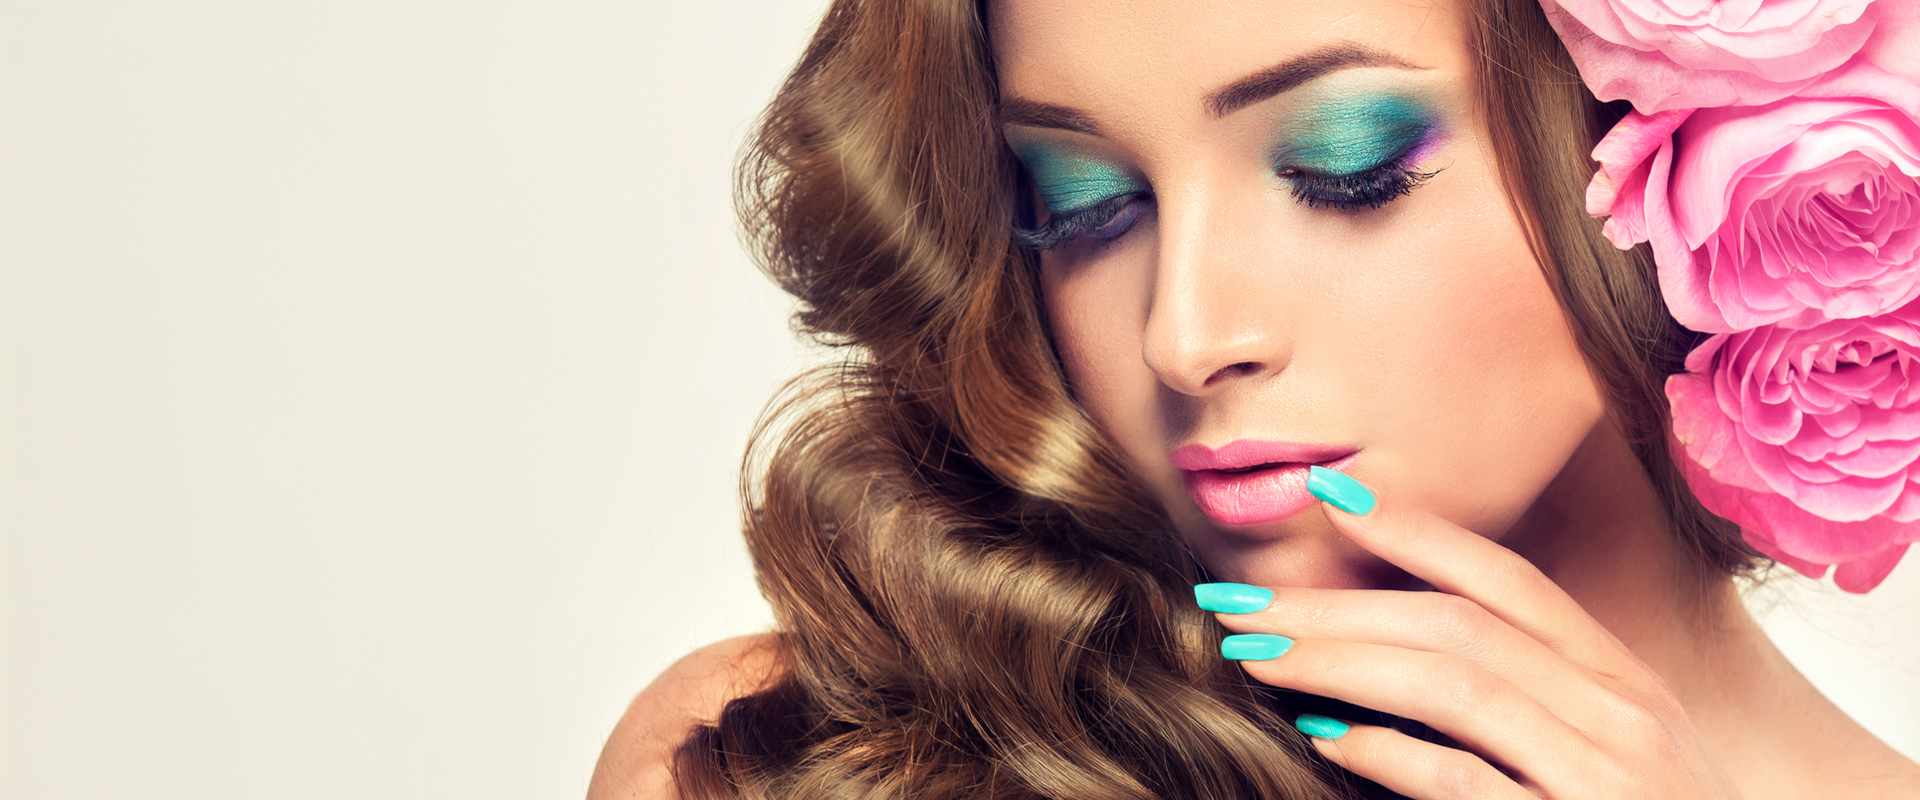 Luxury Nail Bar - Nail salon in Clackamas, Oregon 97015